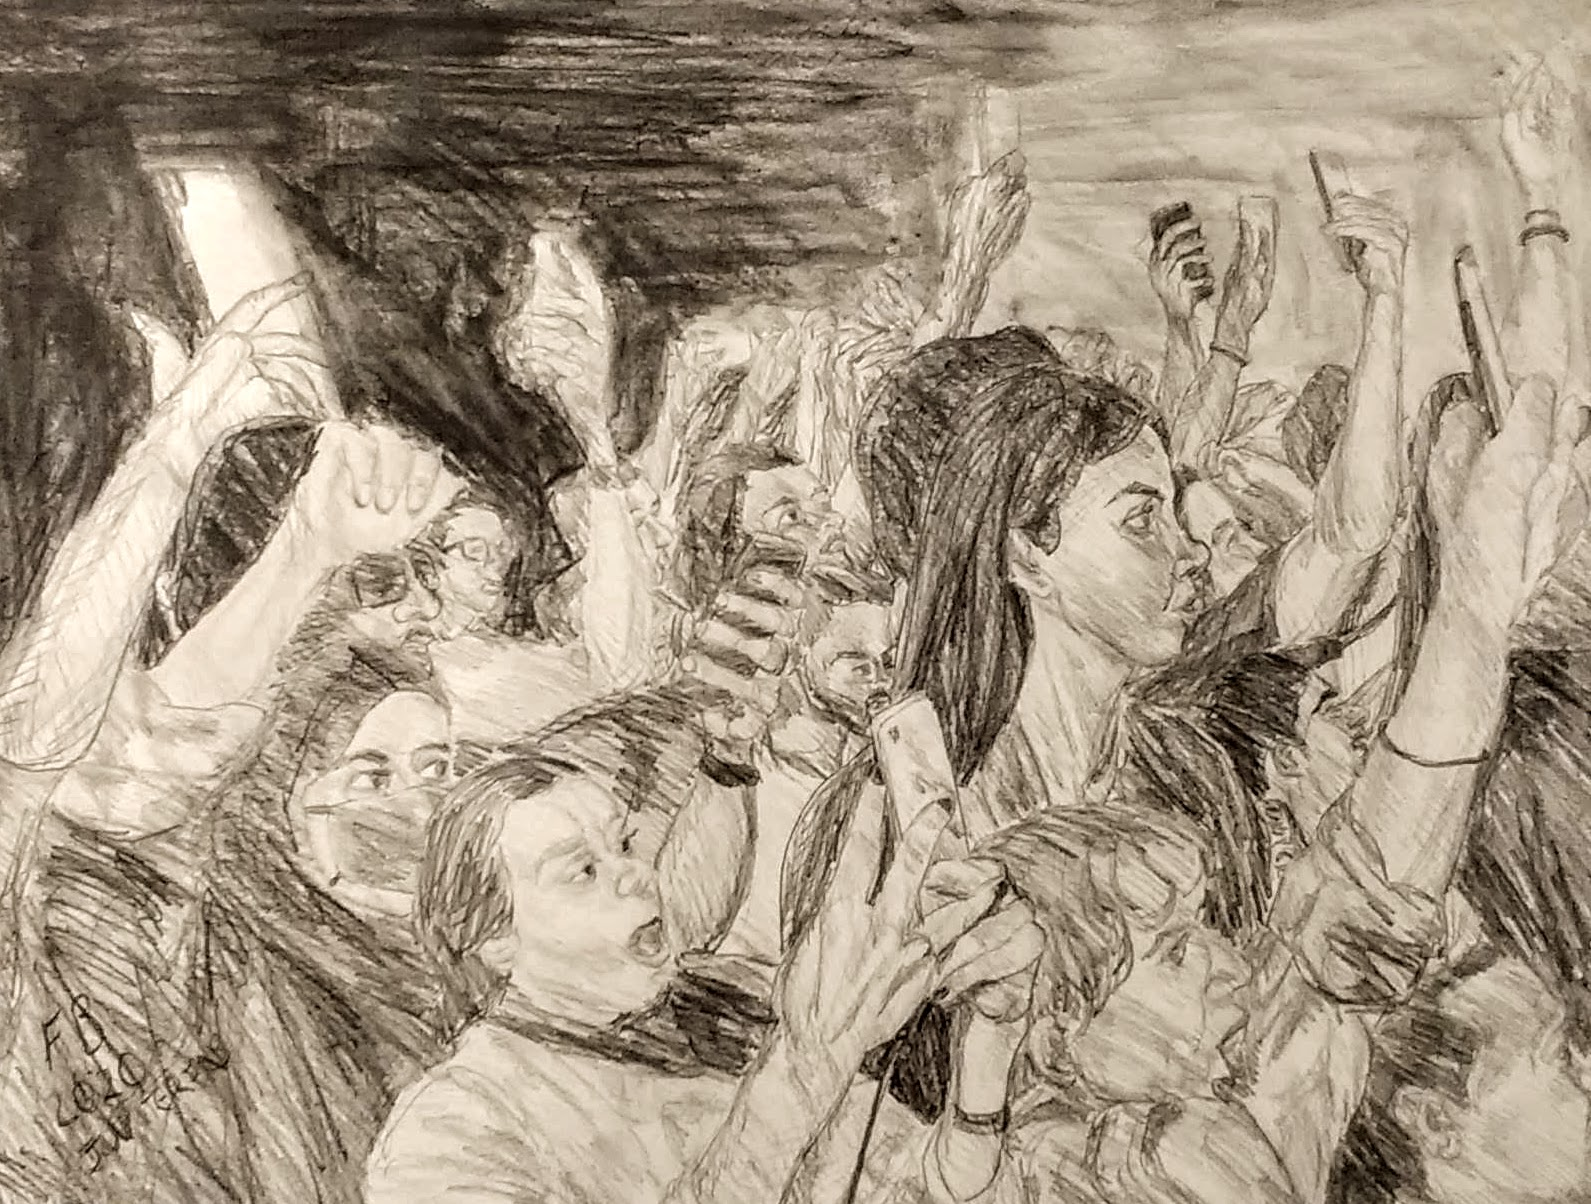 2020 at the concert 50x 65 cm acrylic and pencil on paper